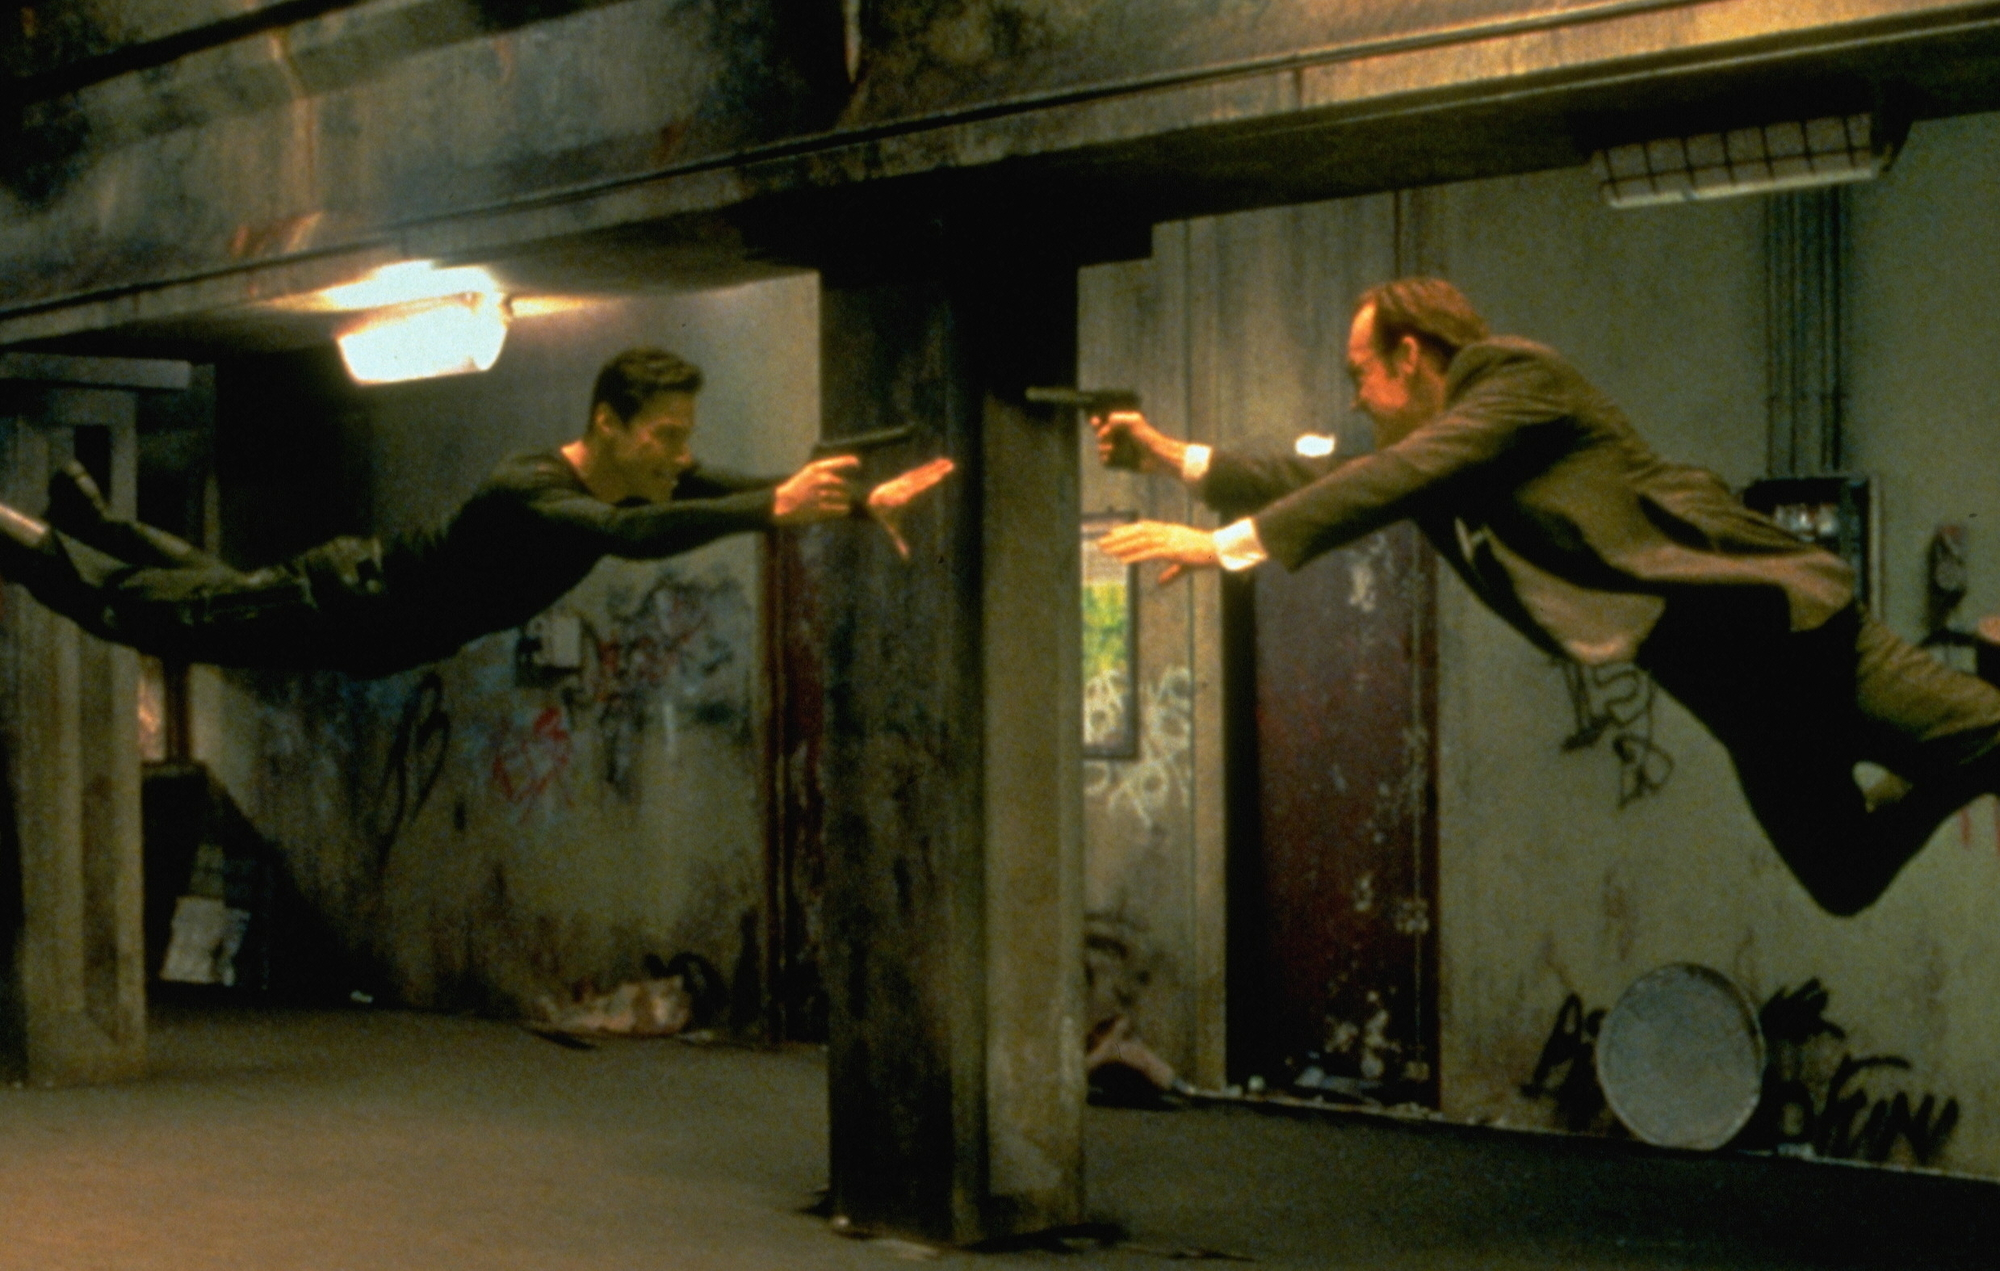 'The Matrix 4' filming causes explosive damage in San Francisco